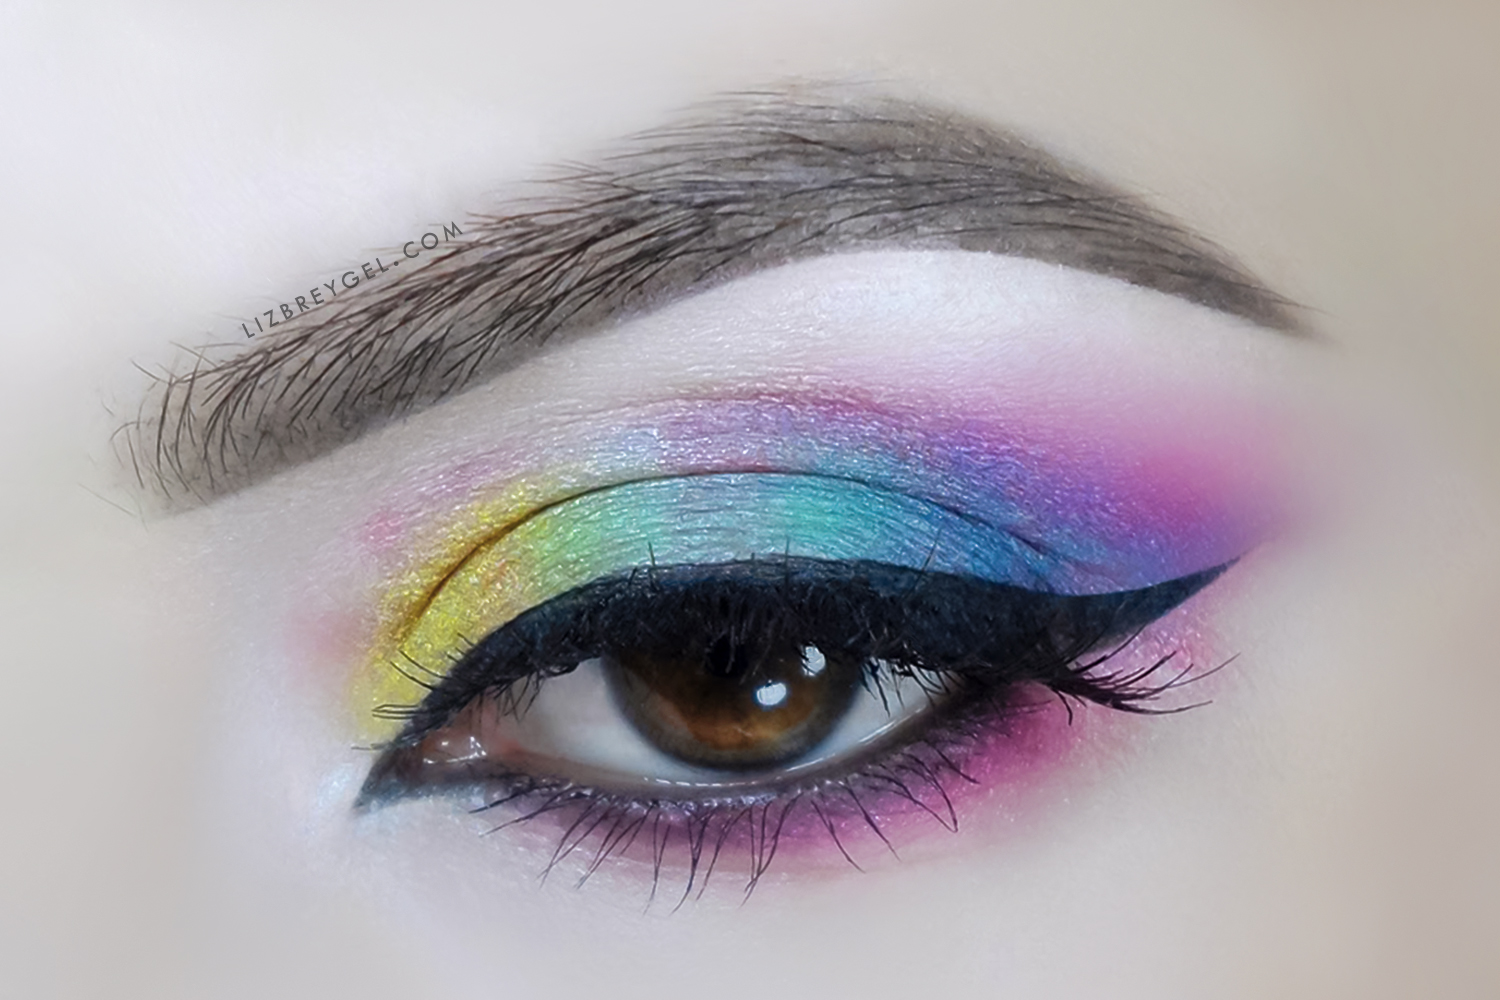 a clos eup picture of an eye with makeup